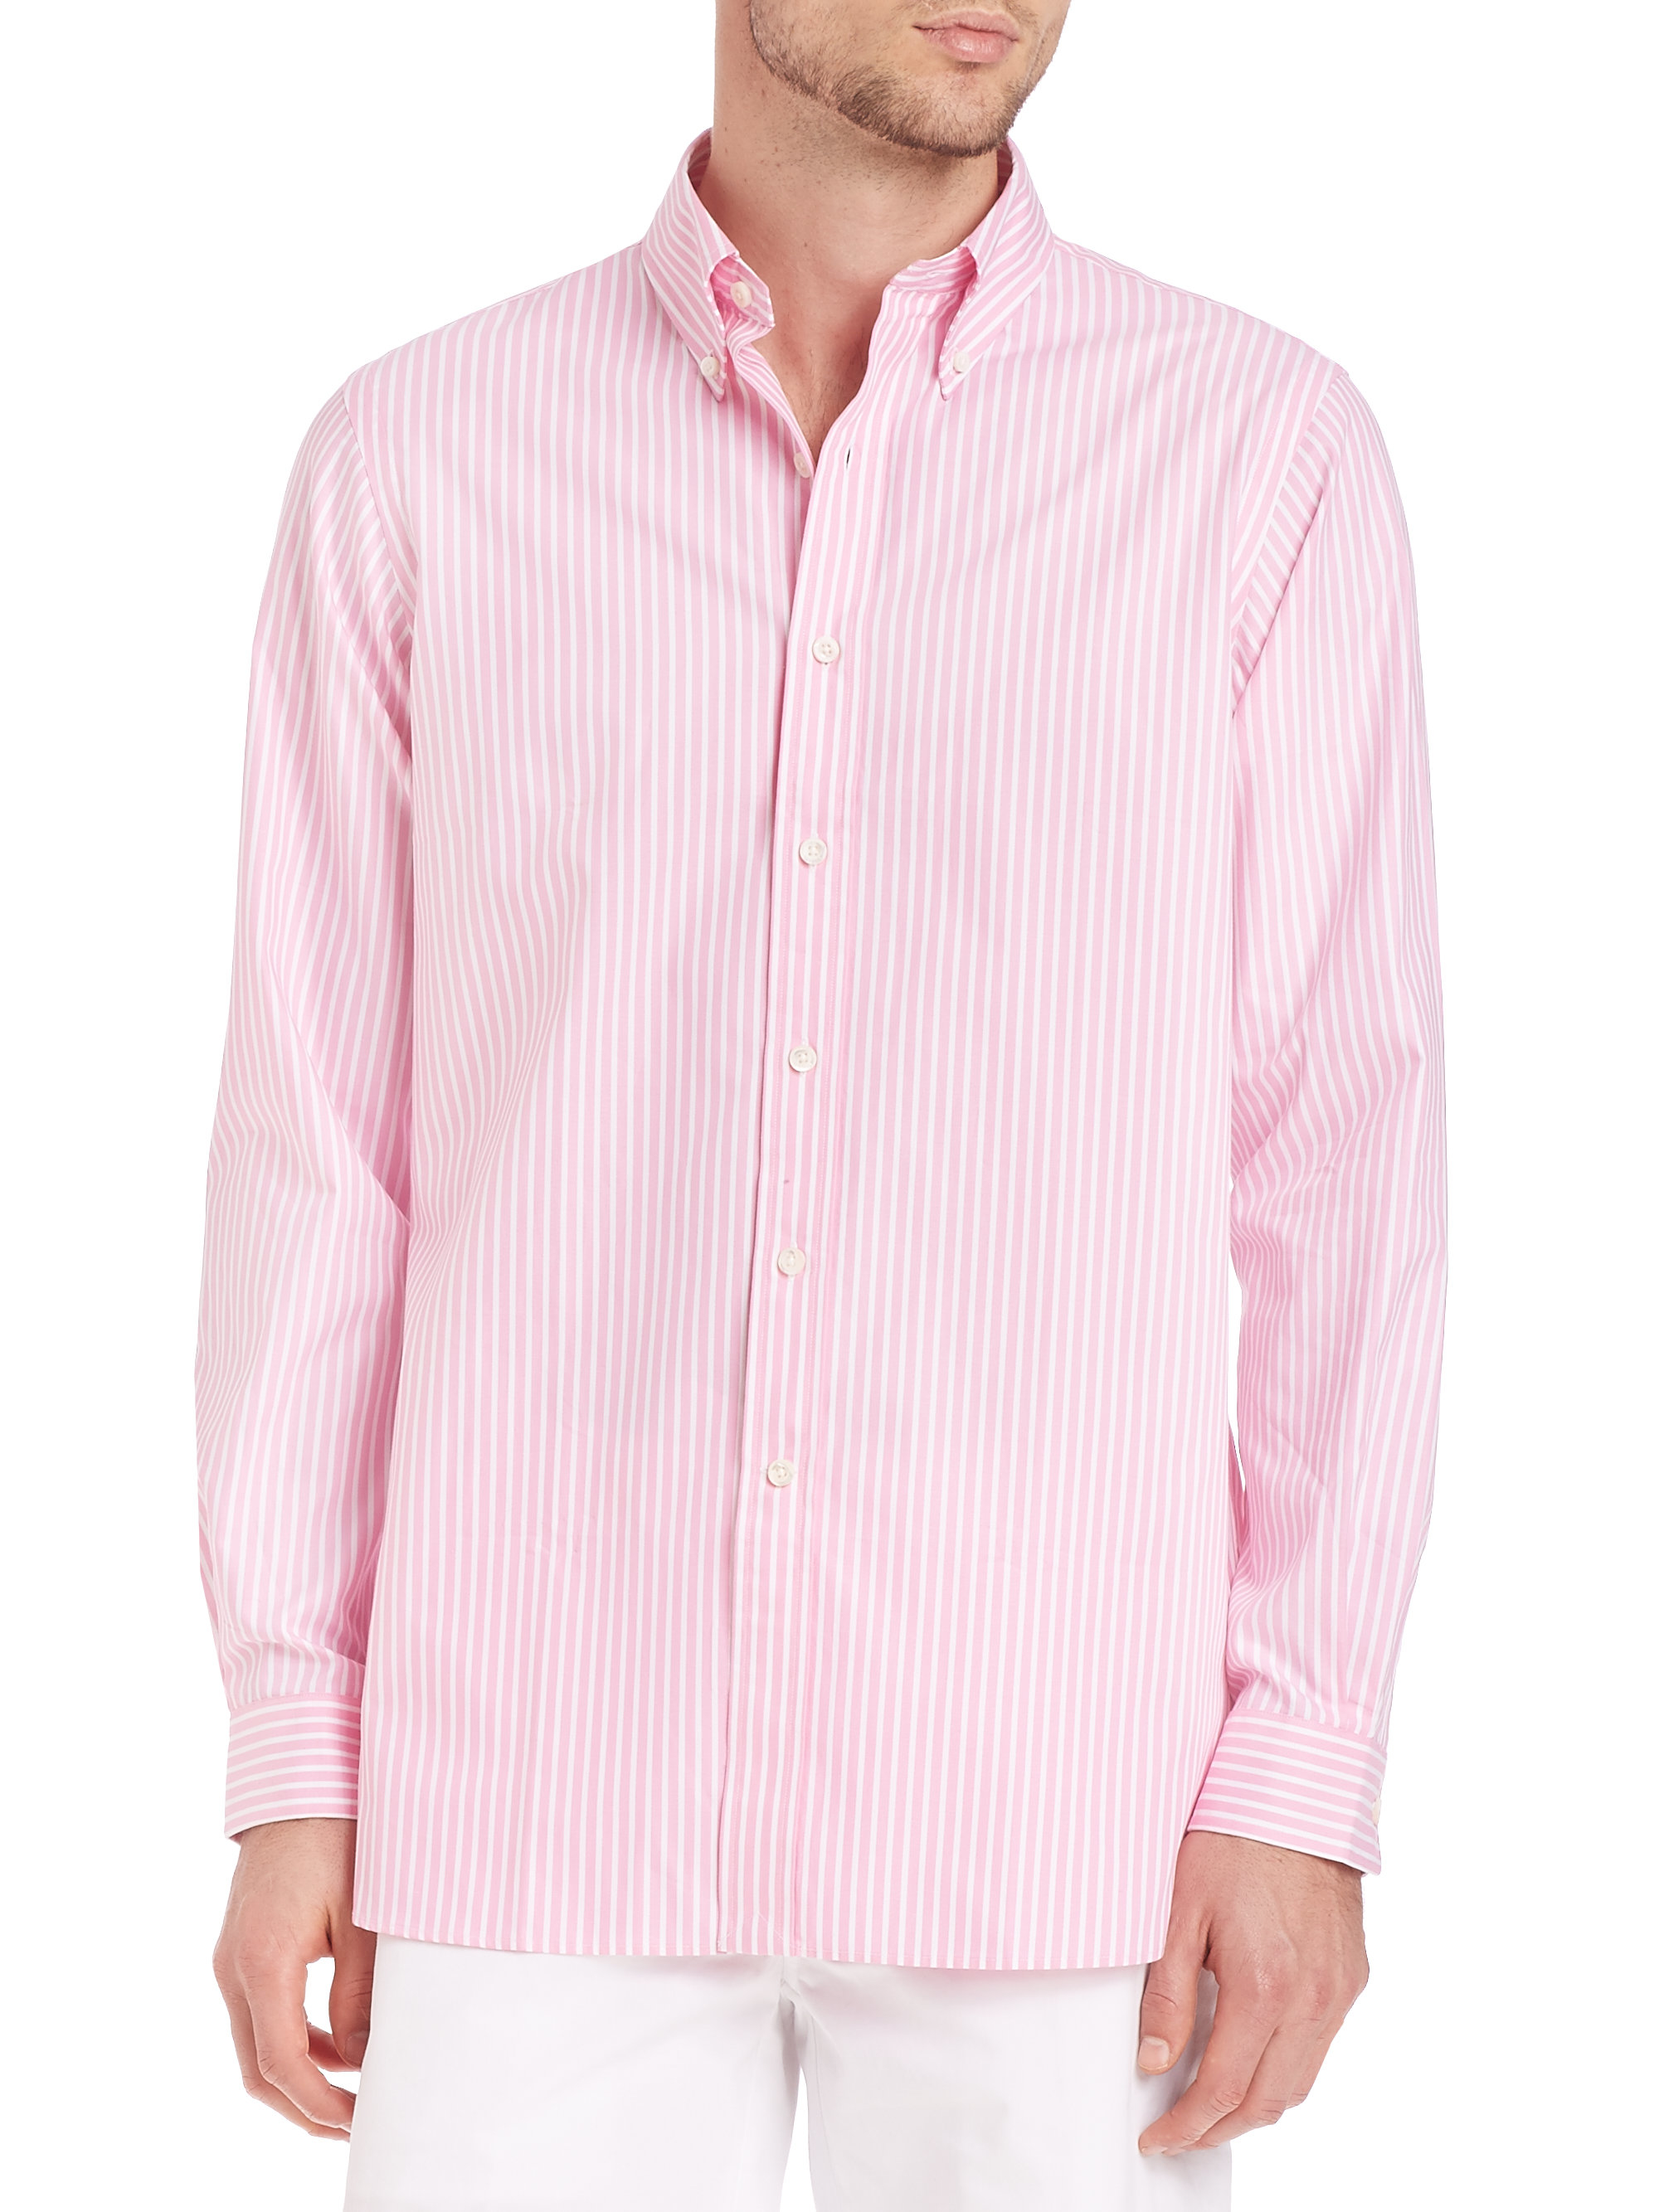 polo ralph lauren striped oxford shirt in pink for men lyst. Black Bedroom Furniture Sets. Home Design Ideas